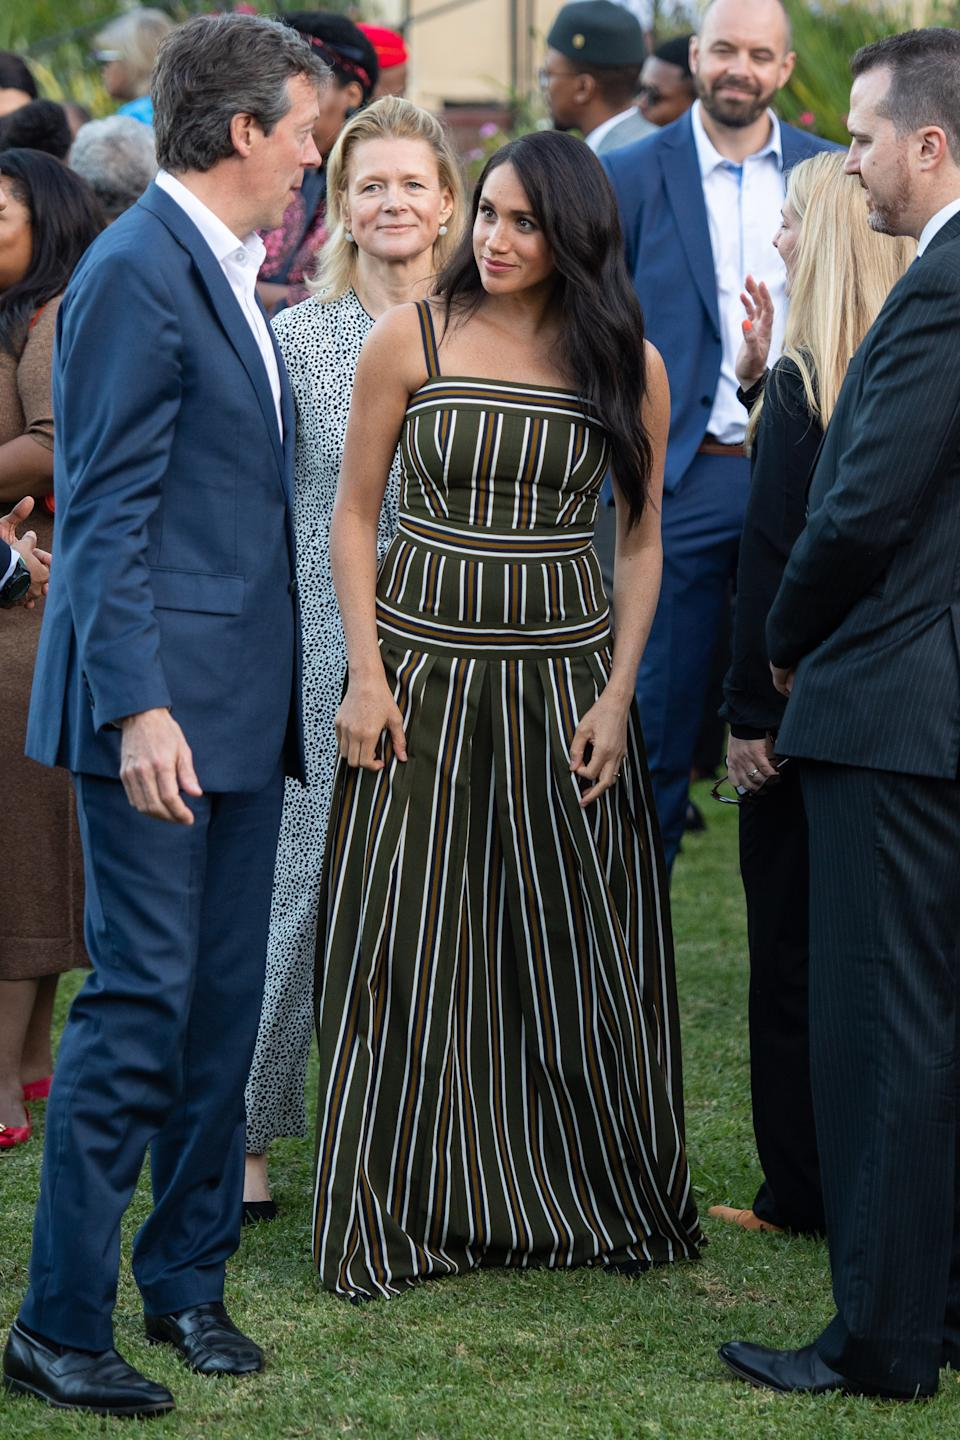 """The Duchess of Sussex opted to recycle her striped Martin Grant maxi dress for the evening reception at the Residence of the British High Commissioner. She styled the look with a pair of black and gold earrings by South African designer, Nina Bosch. The dress is sold out but the earrings are available to buy in four different colours, and retail for £21.49 (R400). <a href=""""https://fave.co/2kQGaM5"""" rel=""""nofollow noopener"""" target=""""_blank"""" data-ylk=""""slk:Shop now"""" class=""""link rapid-noclick-resp""""><strong>Shop now</strong></a><strong>. </strong><em>[Photo: PA]</em>"""